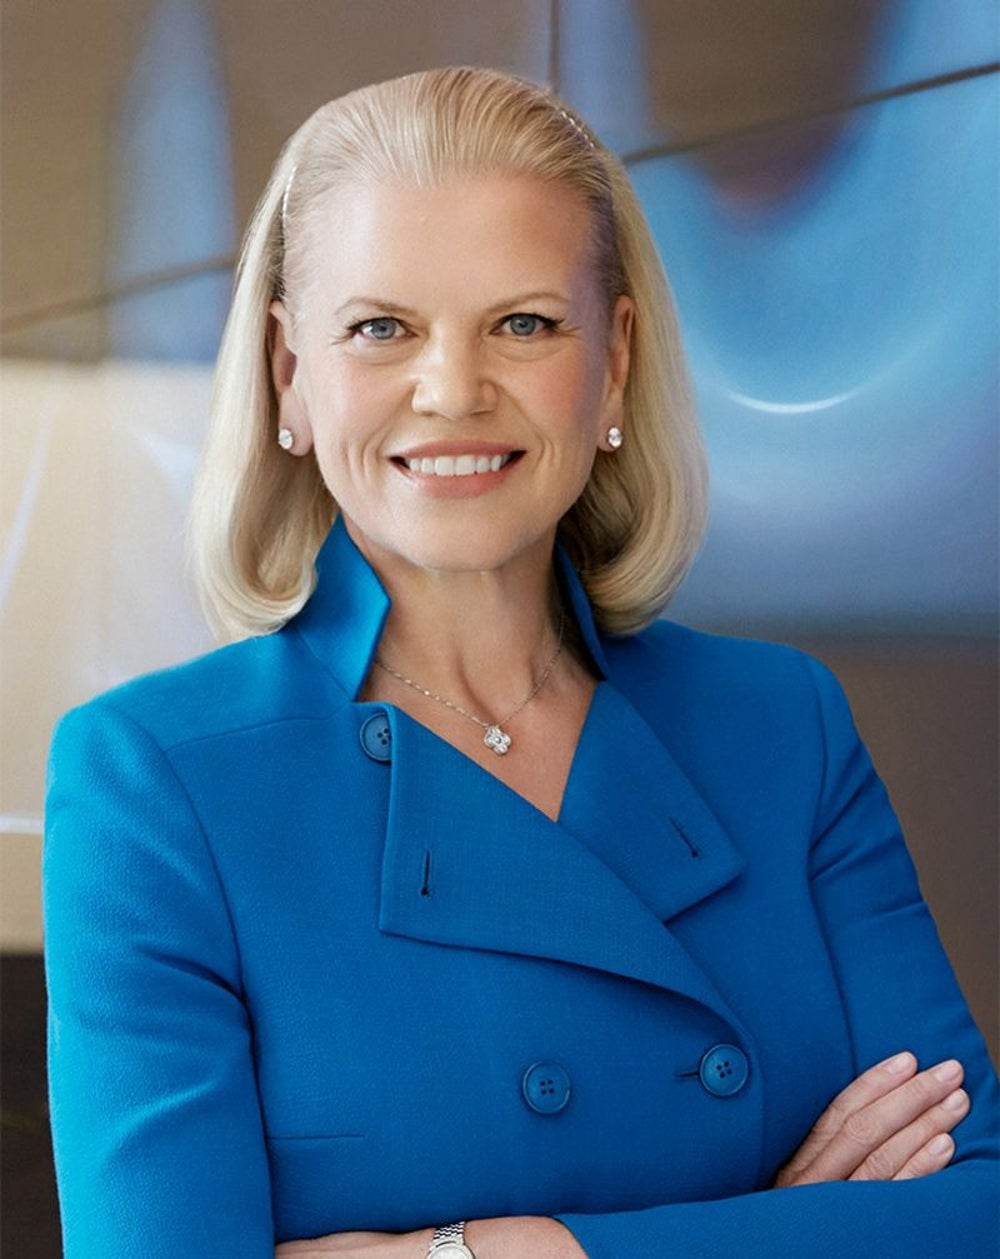 Ginni Rometty, CEO of IBM -- $32.3 million